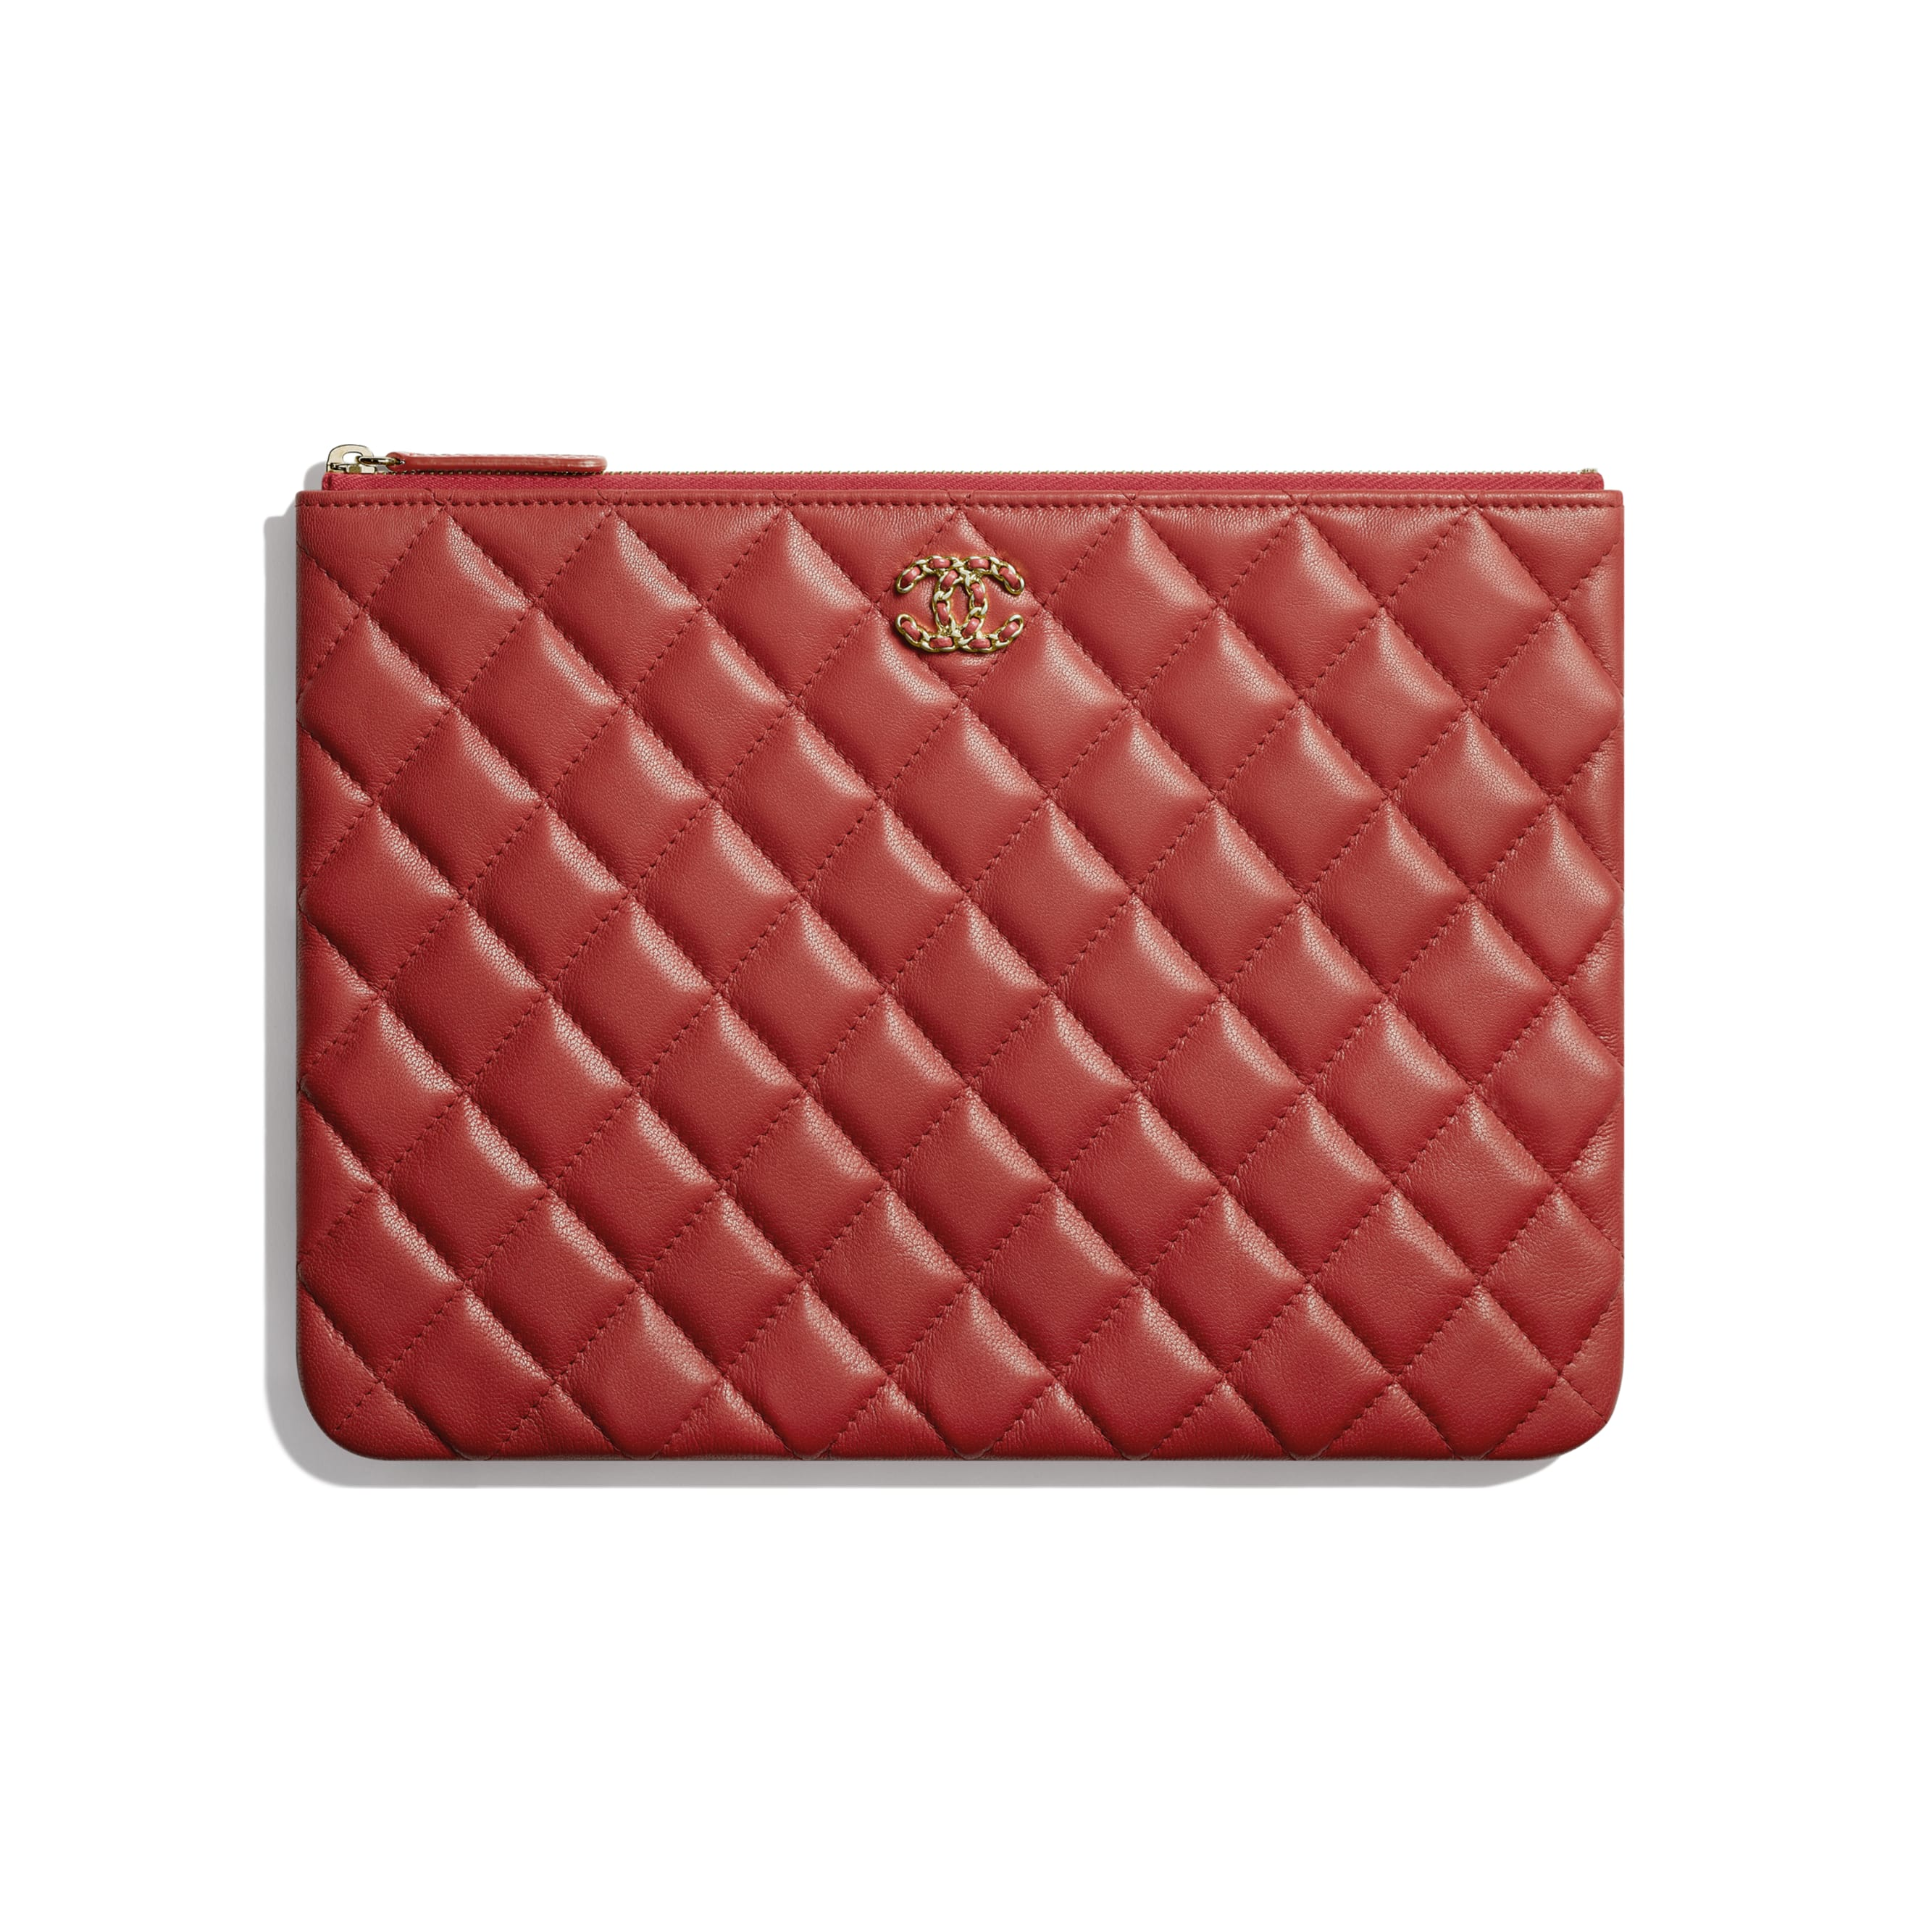 Pouch - Red - Lambskin & Gold-Tone Metal - Default view - see standard sized version